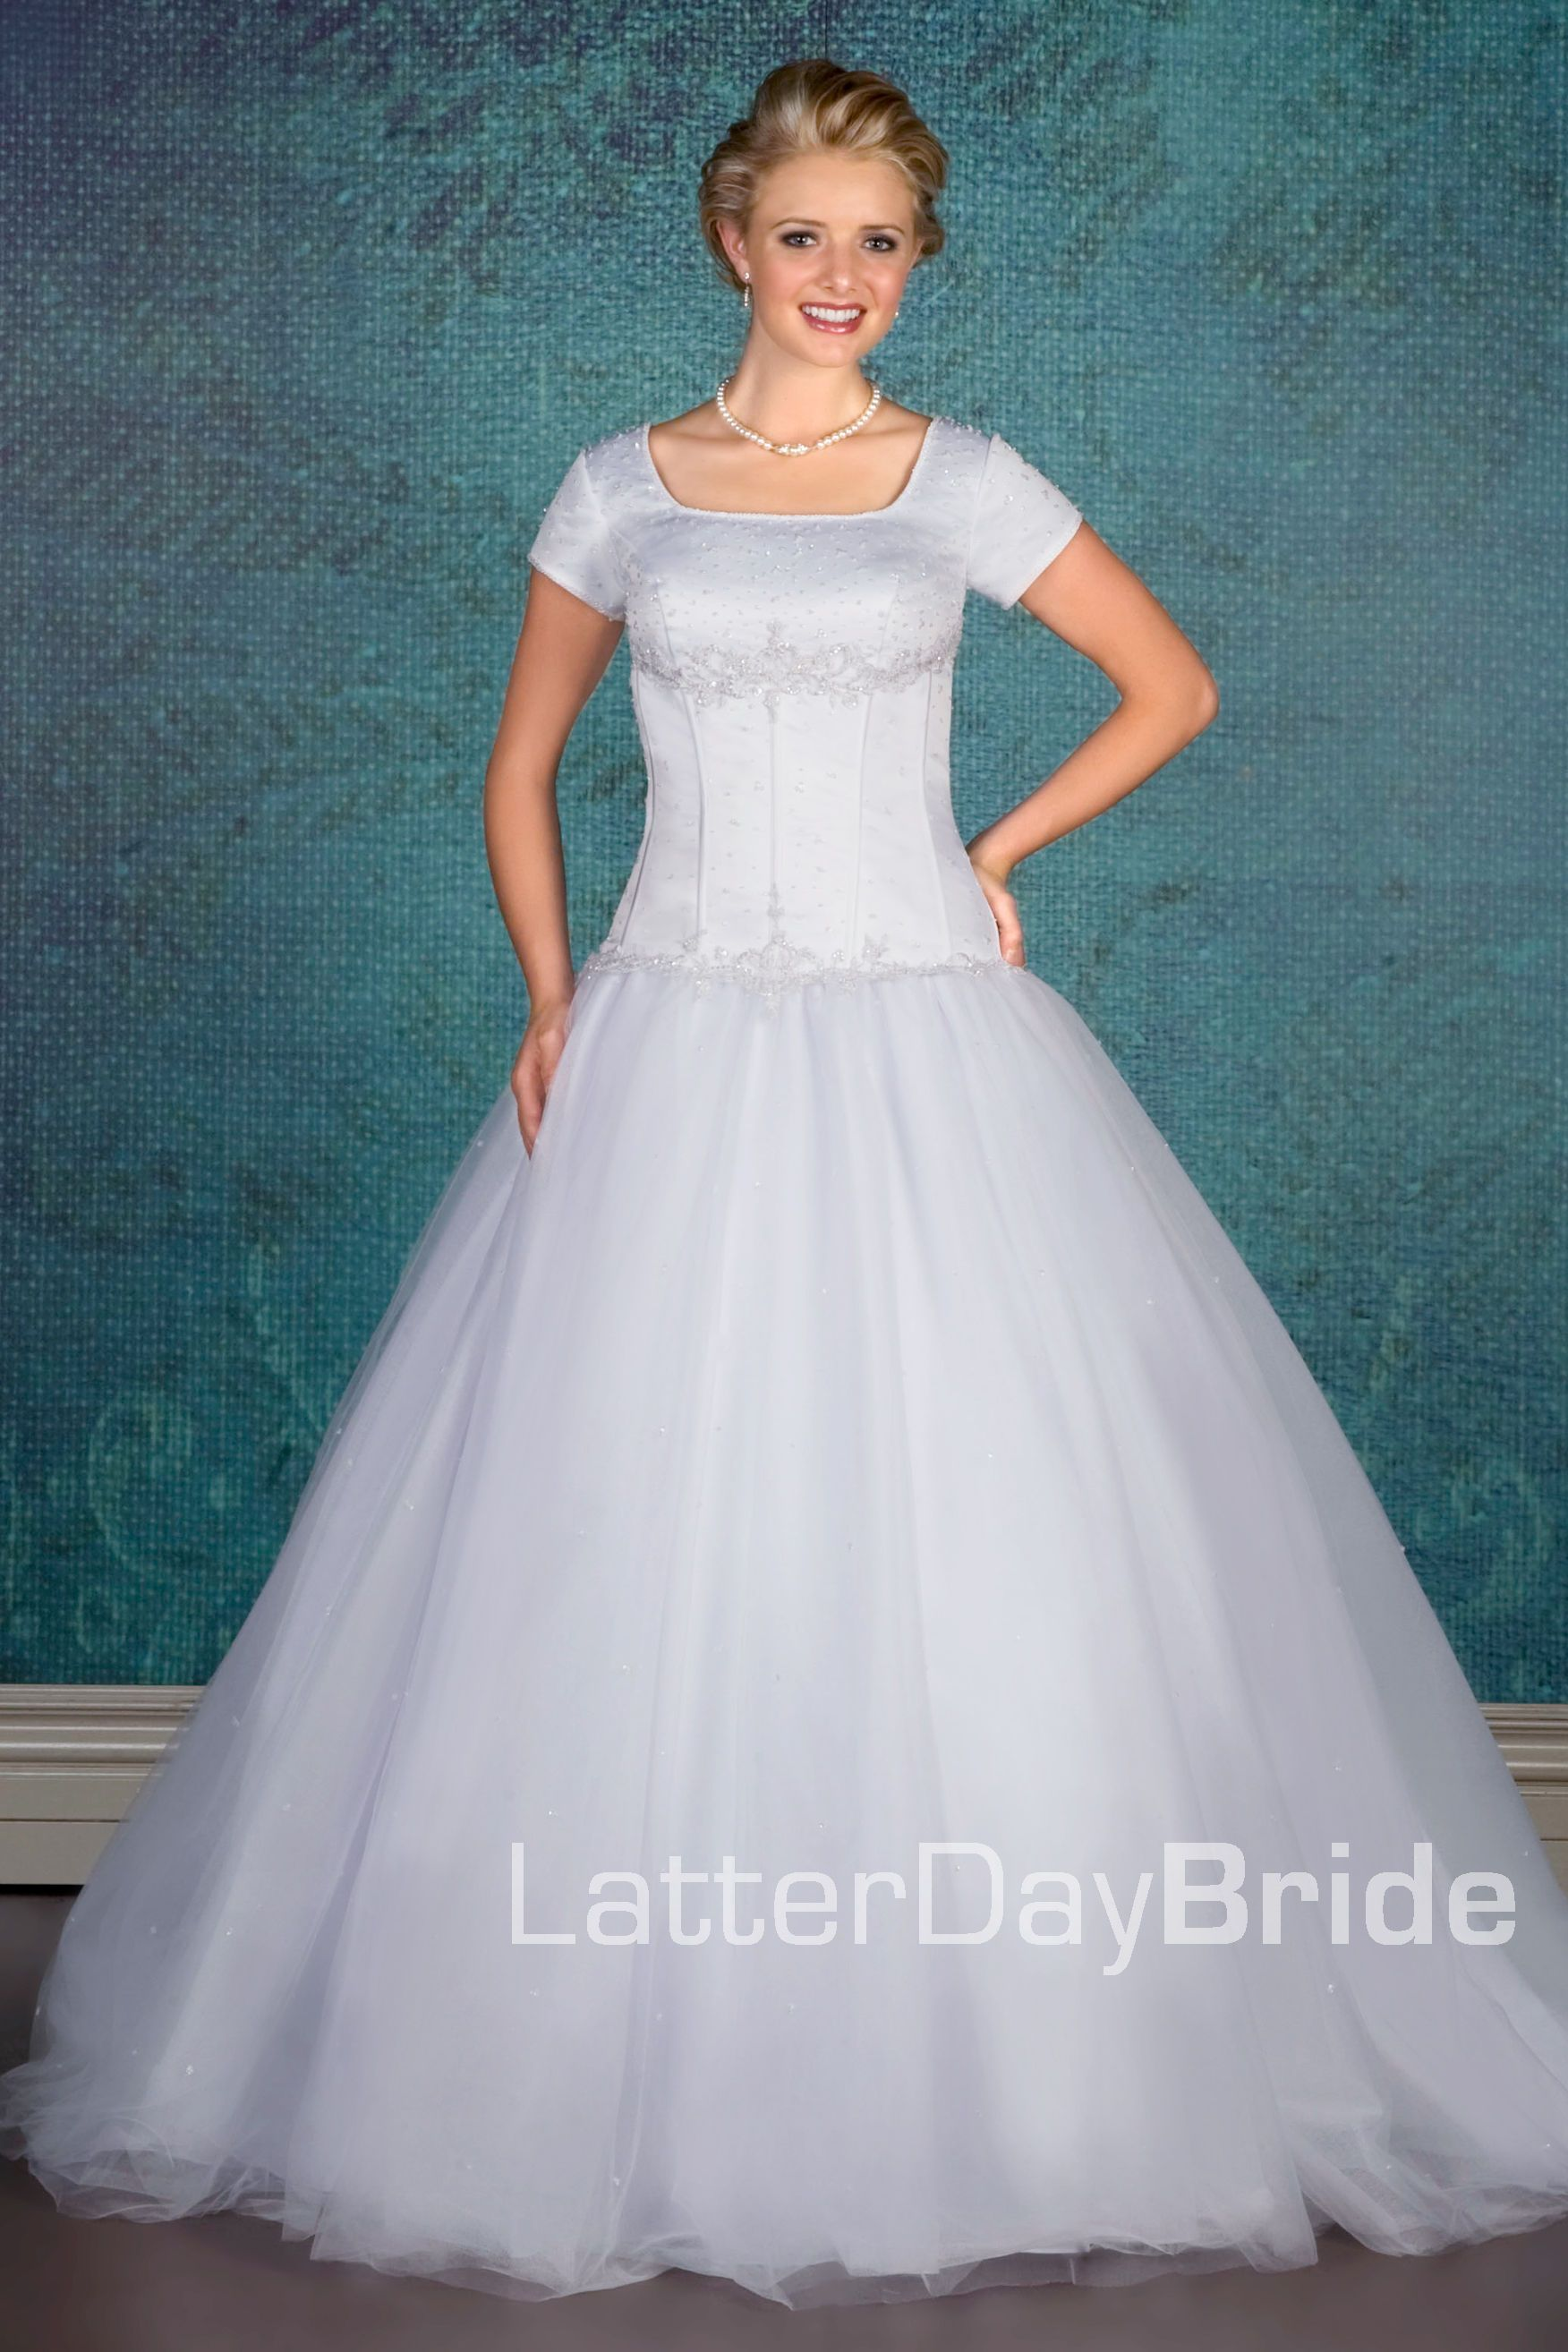 Love how it has like a built in corset and a tulle ballgown skirt